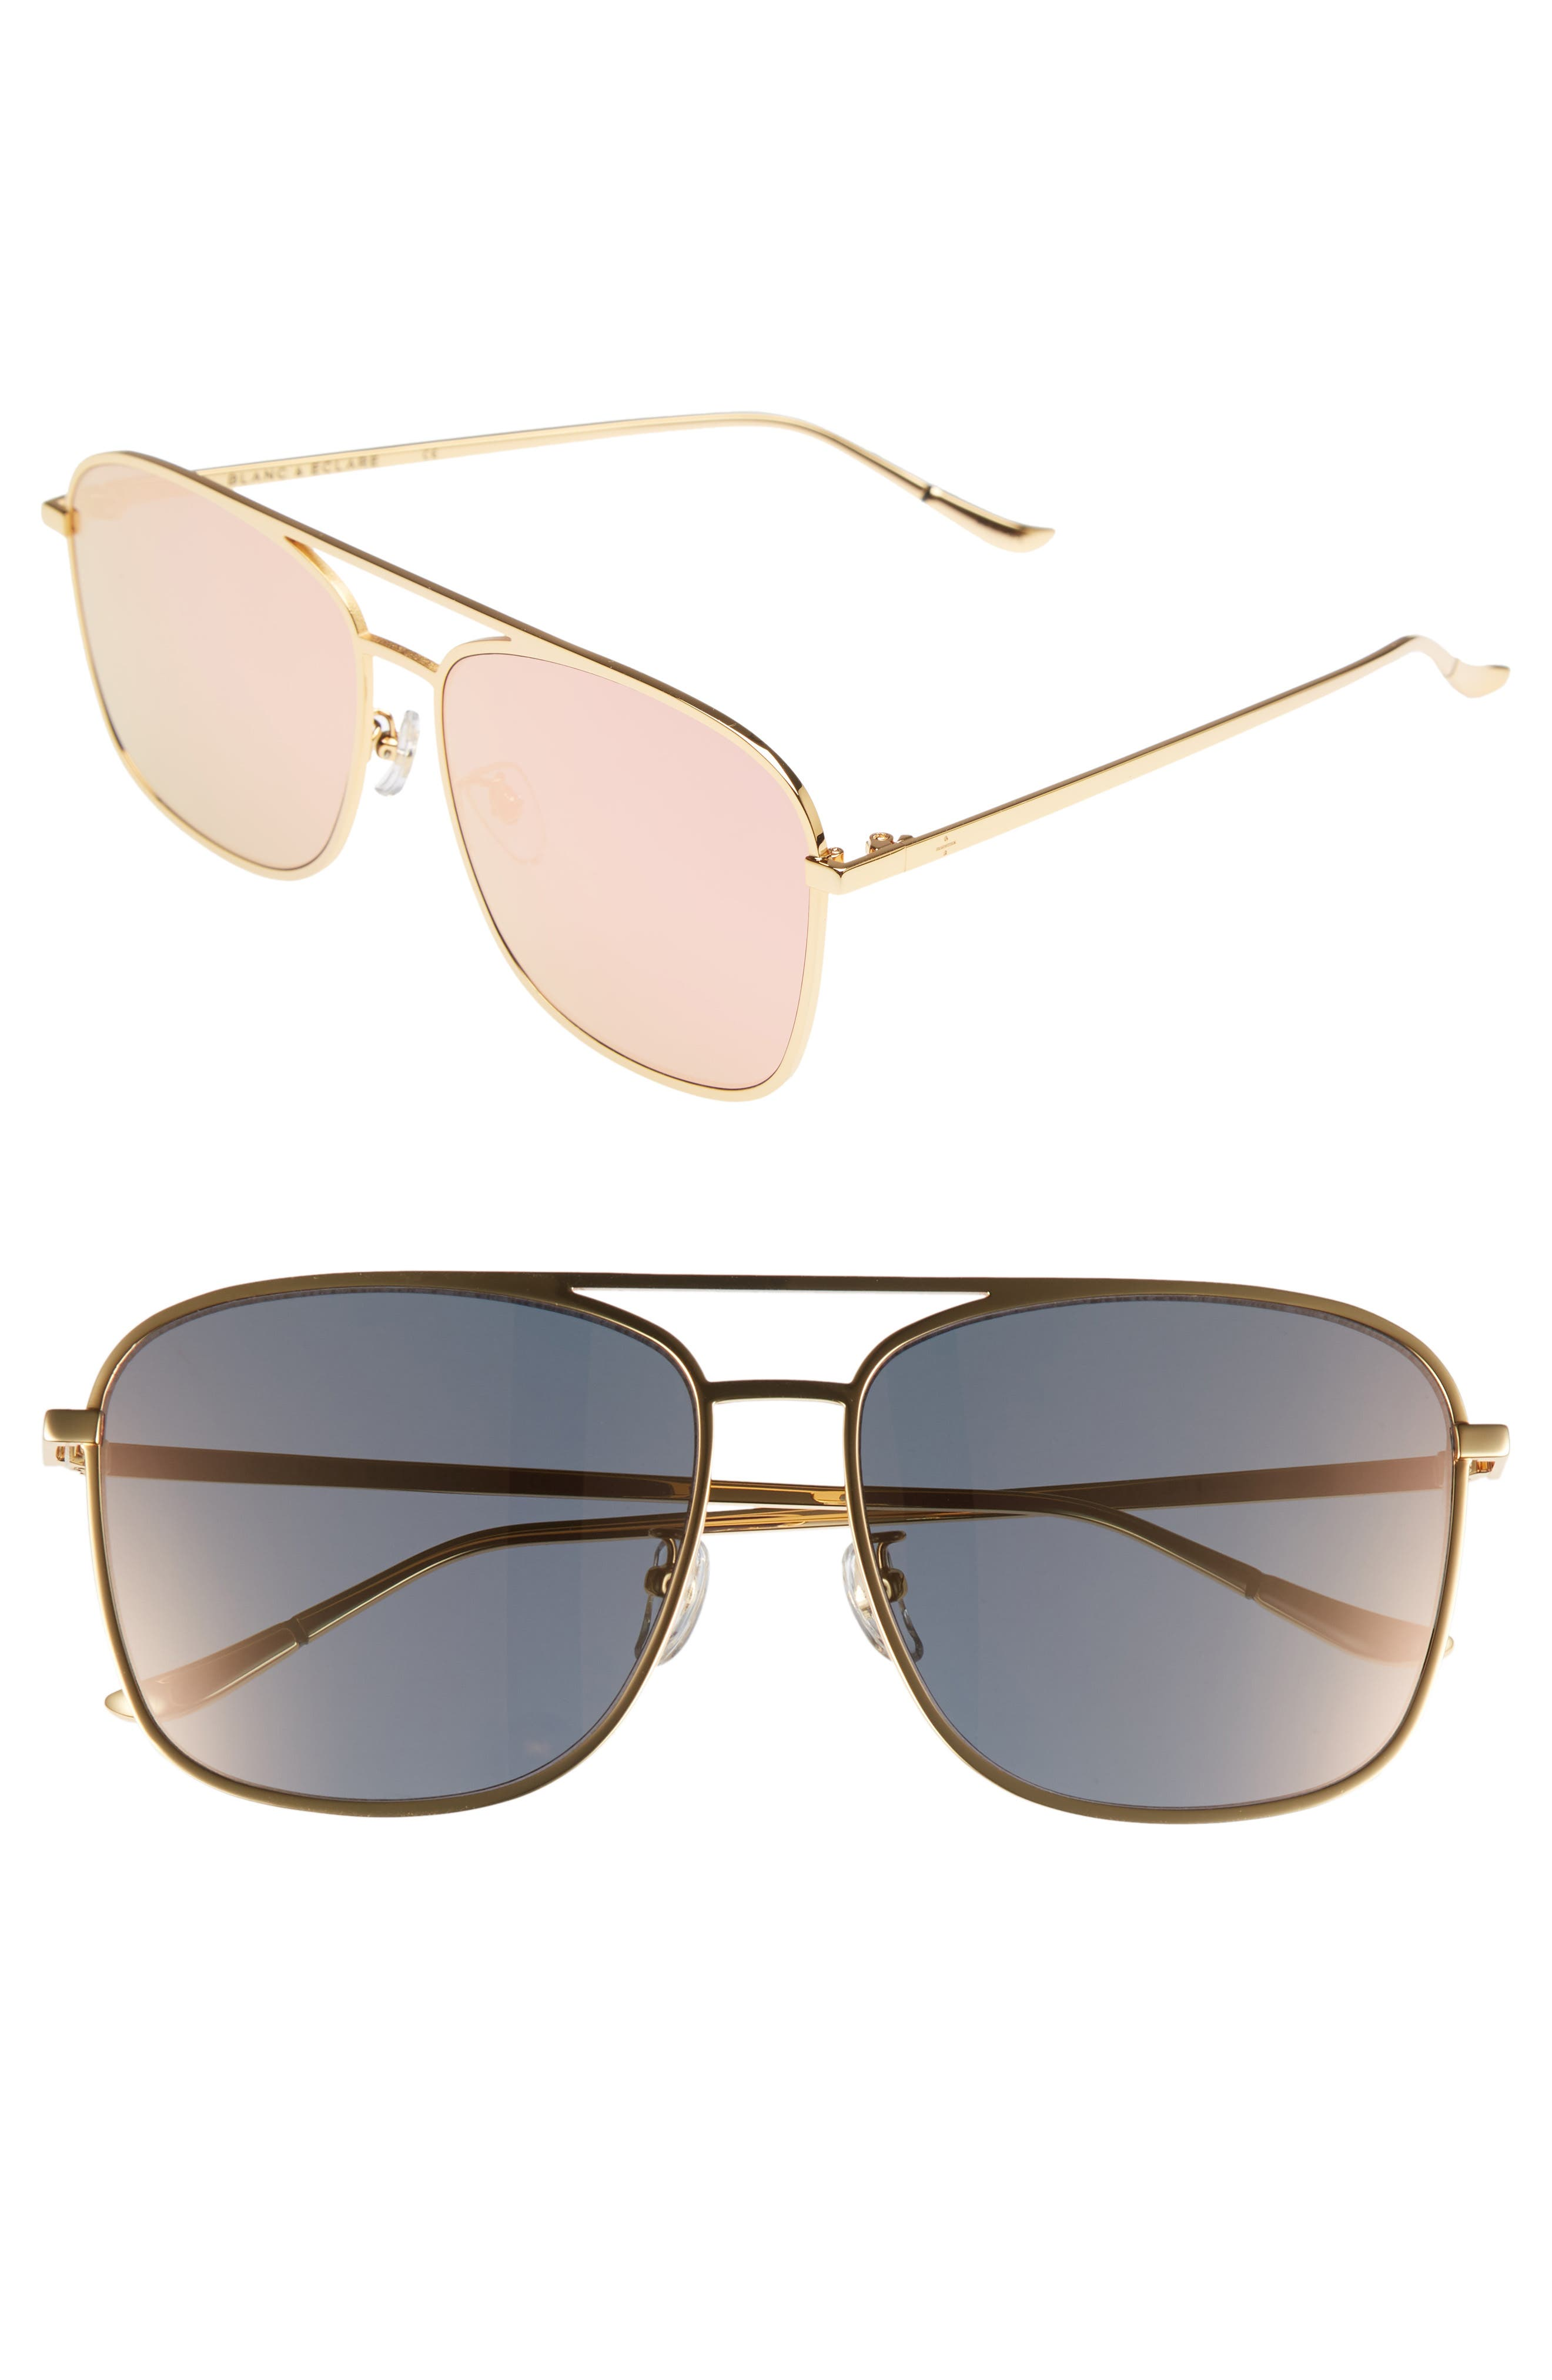 BLANC & ECLARE Geneva 61mm Large Polarized Metal Aviator Sunglasses,                         Main,                         color, Gold/ Pink